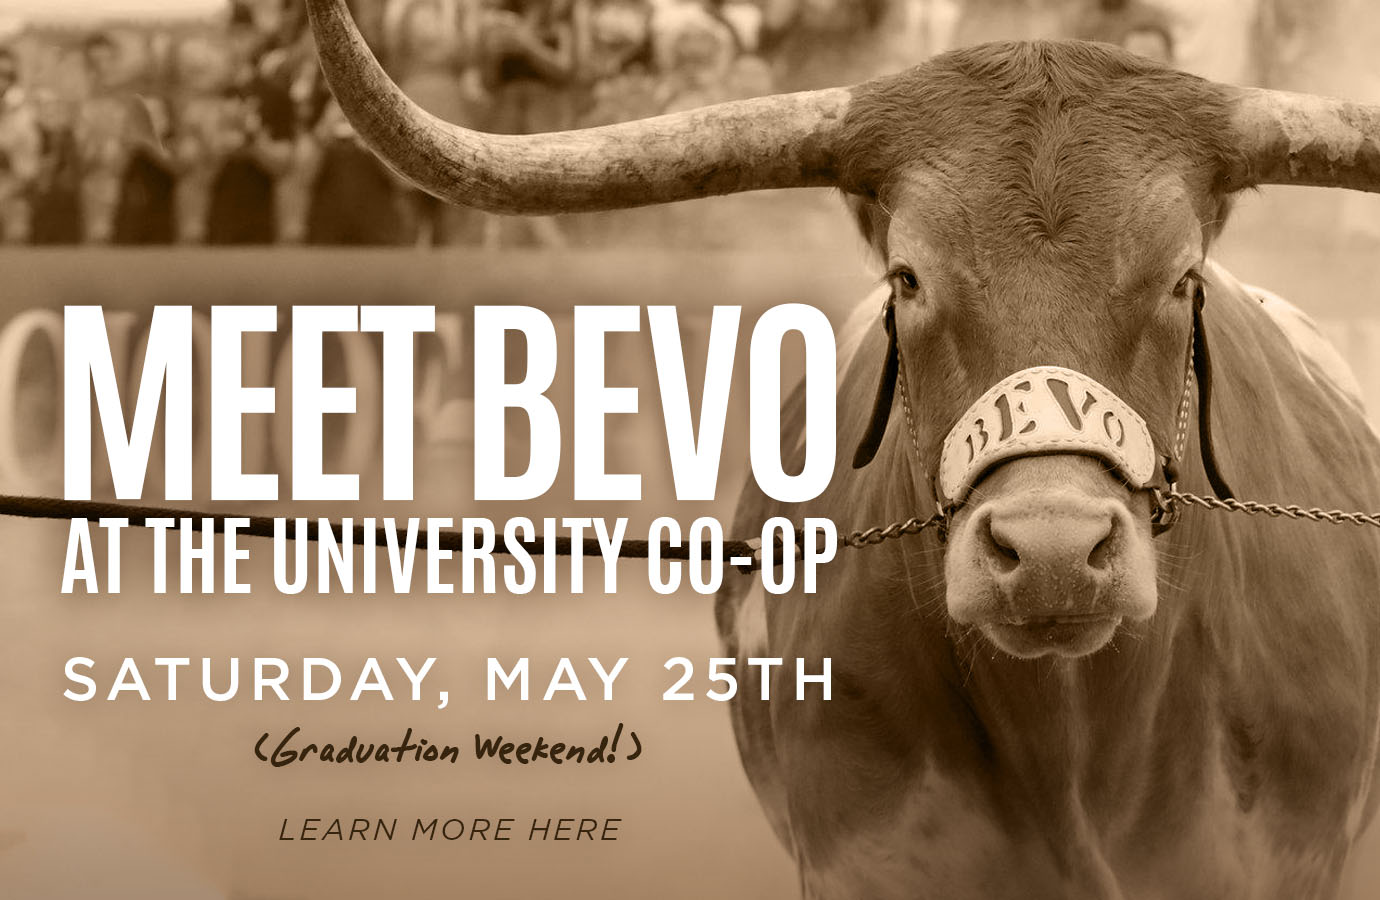 Meet Bevo Saturday